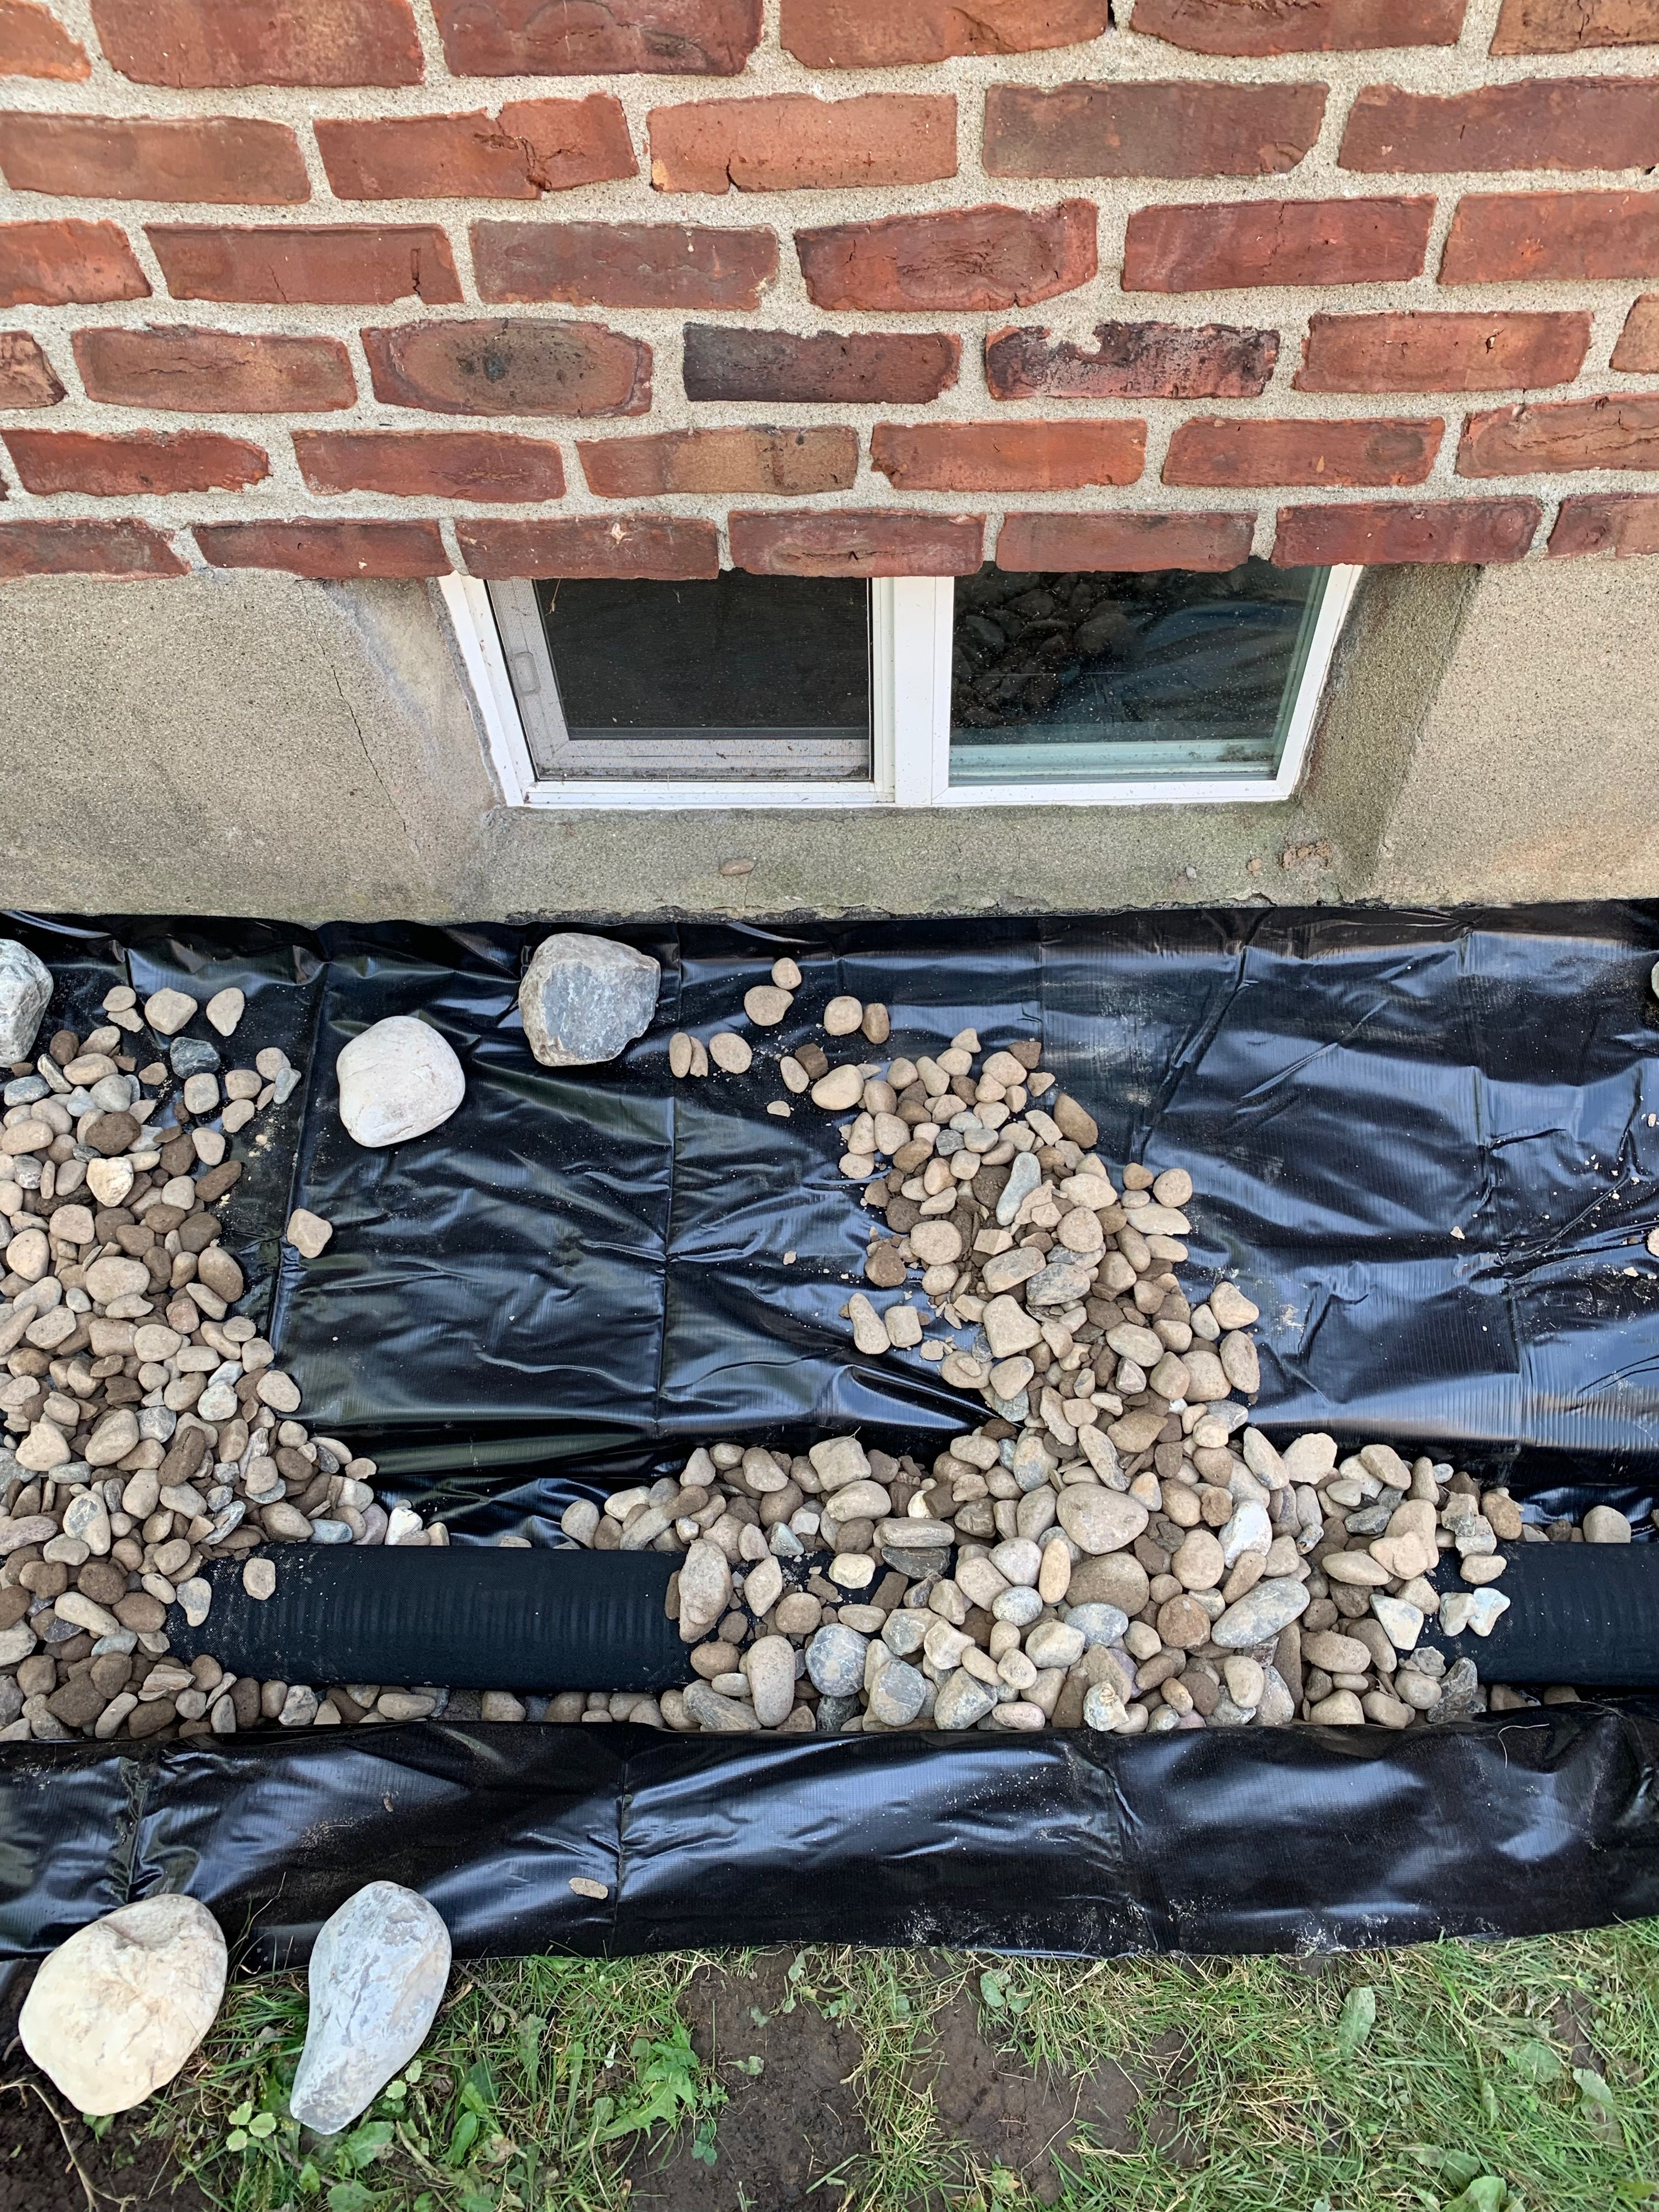 Basement Waterproofing With Exterior Foundation French Drain Install To Fix Wet Damp Leaking Wall Waterproofing Basement Sump Pump Drainage Drainage